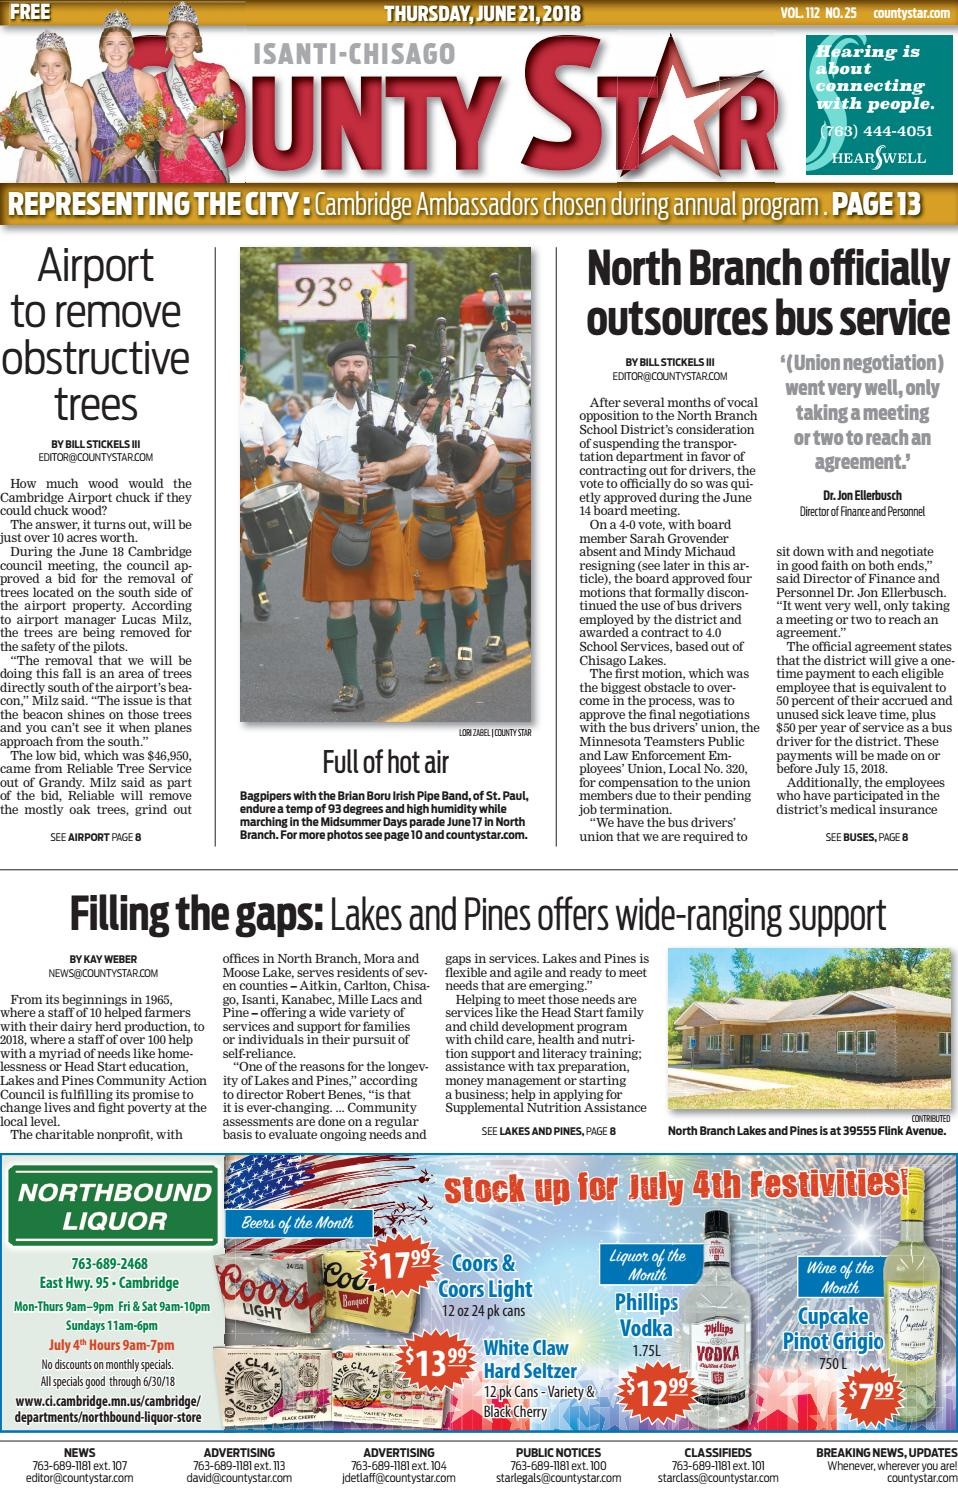 Isanti-Chisago County Star June 21, 2018